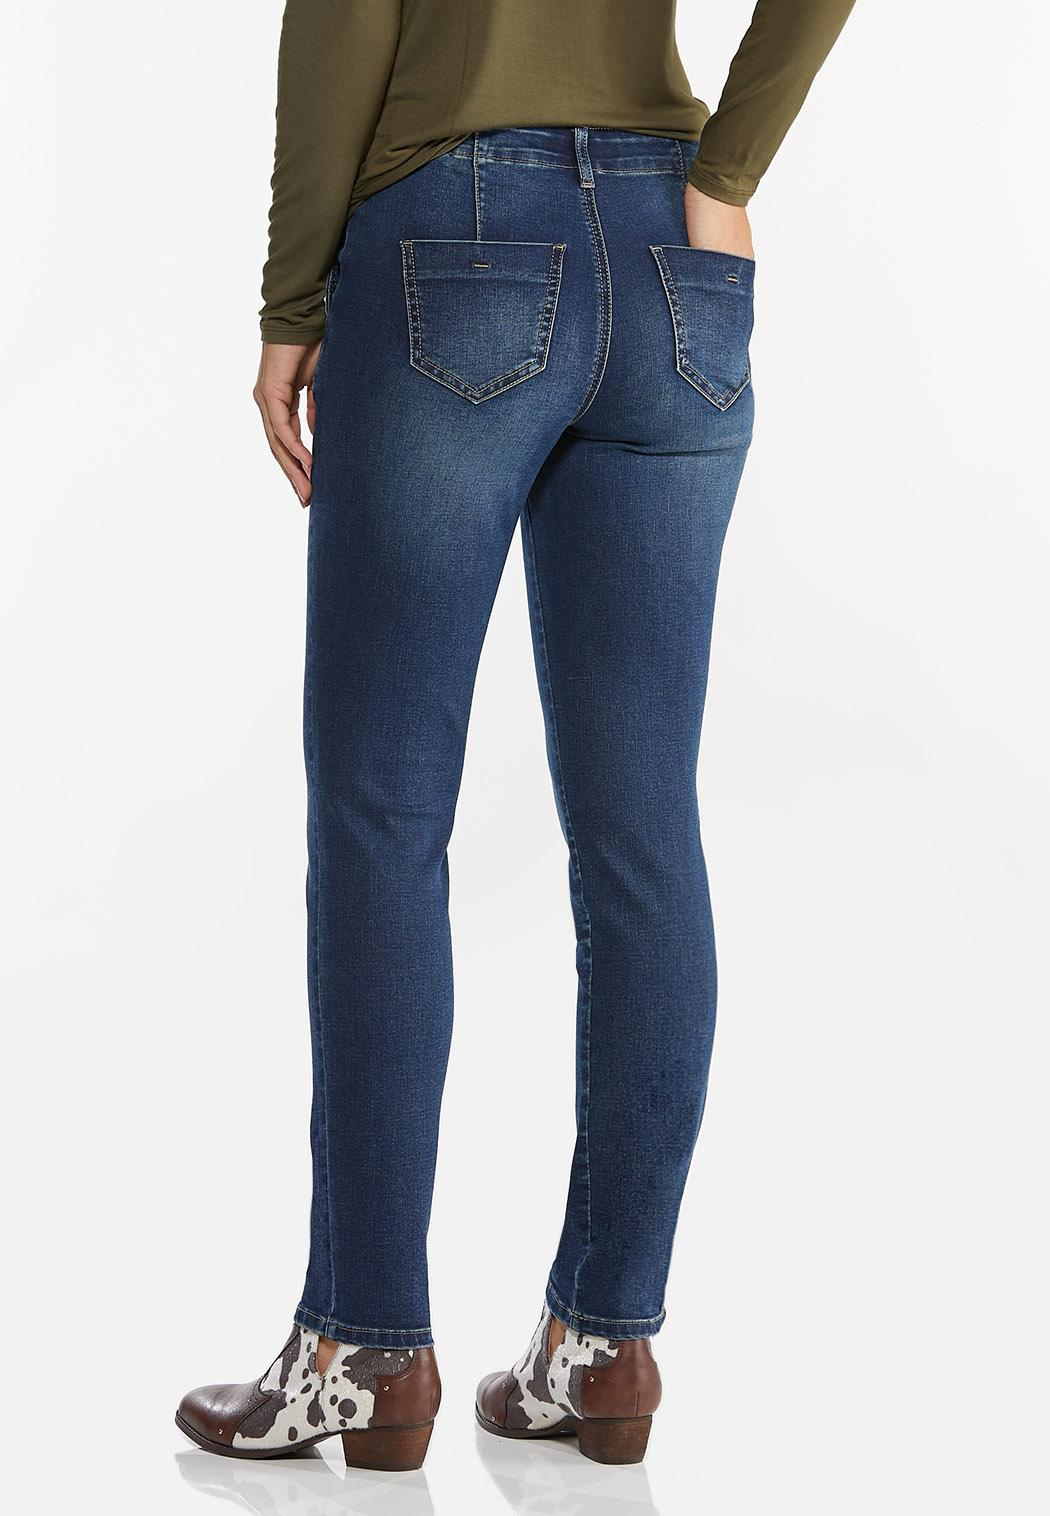 High-Rise Button Skinny Jeans (Item #44444026)